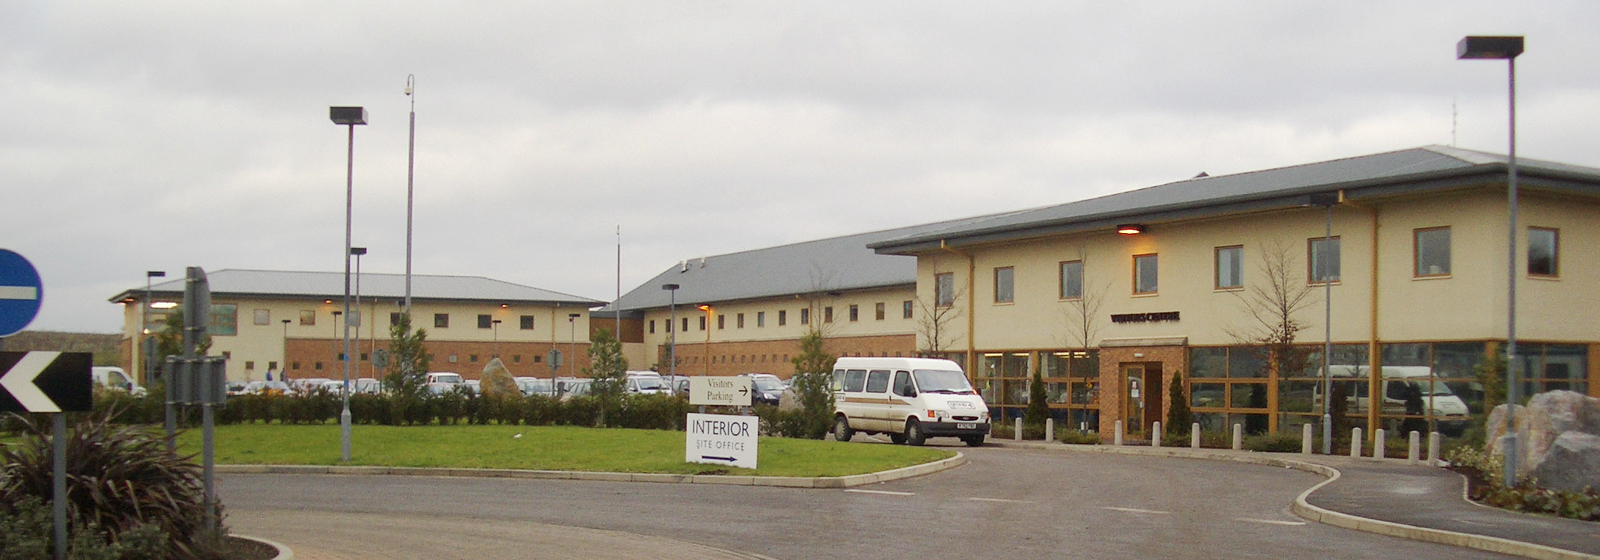 Hearing Centre – Yarl's Wood Immigration Removal Centre